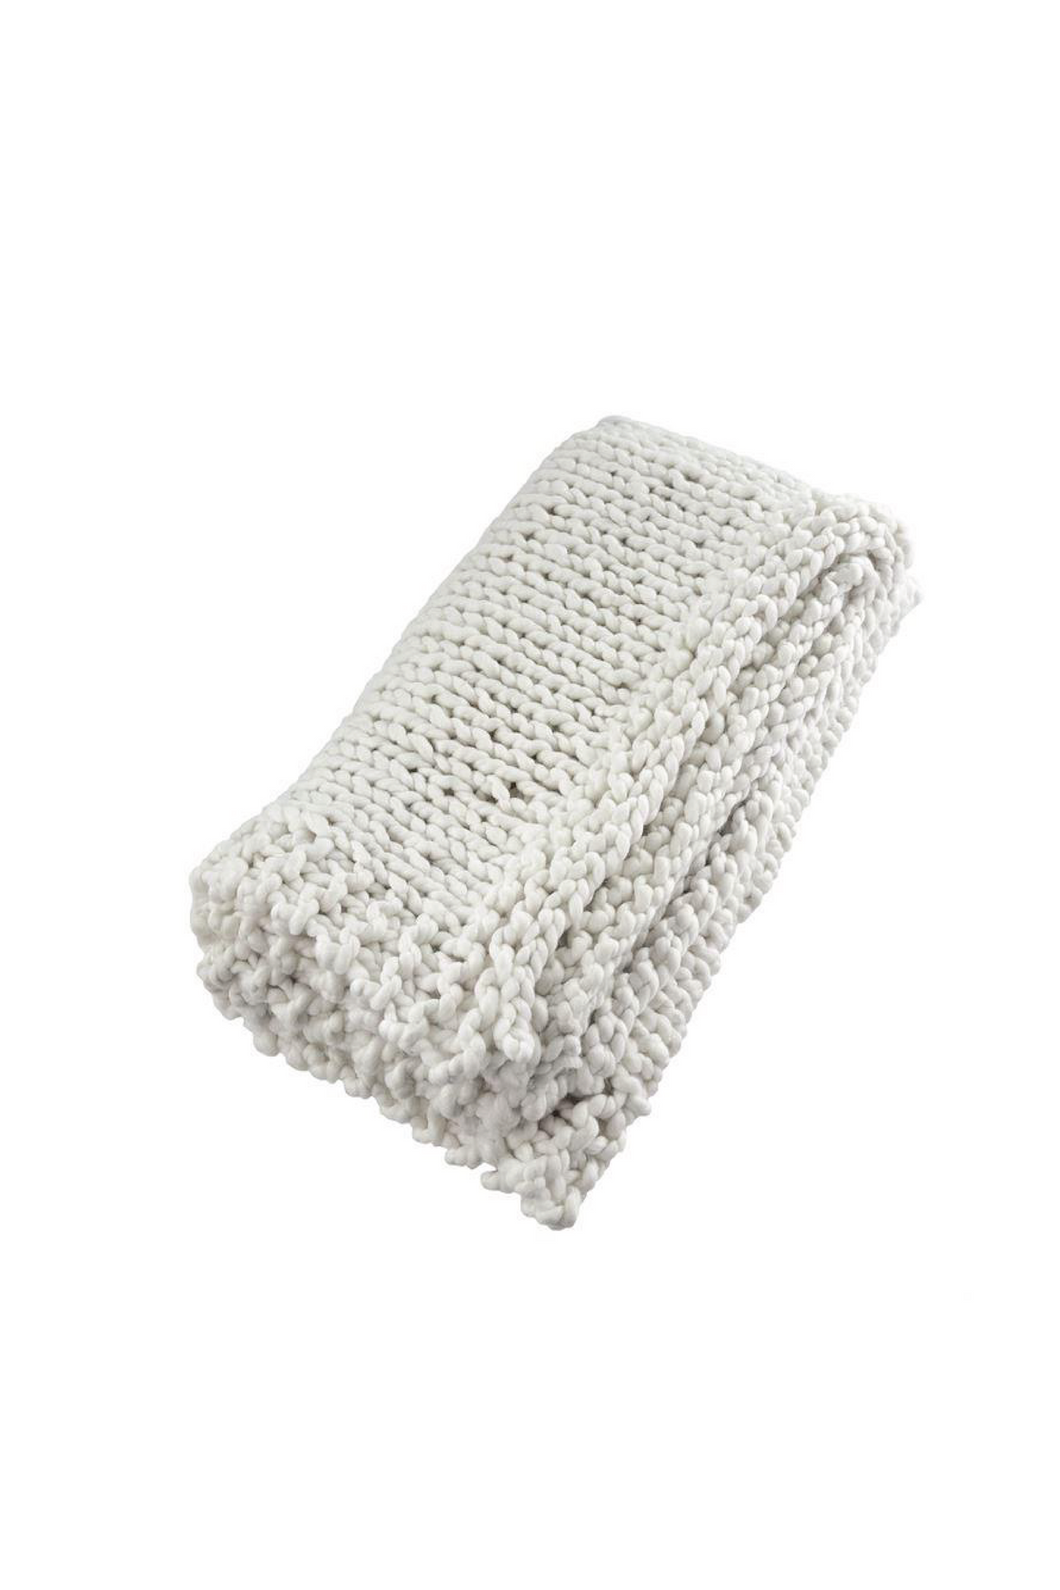 Labbelle Super Chunky Woven Throw - White